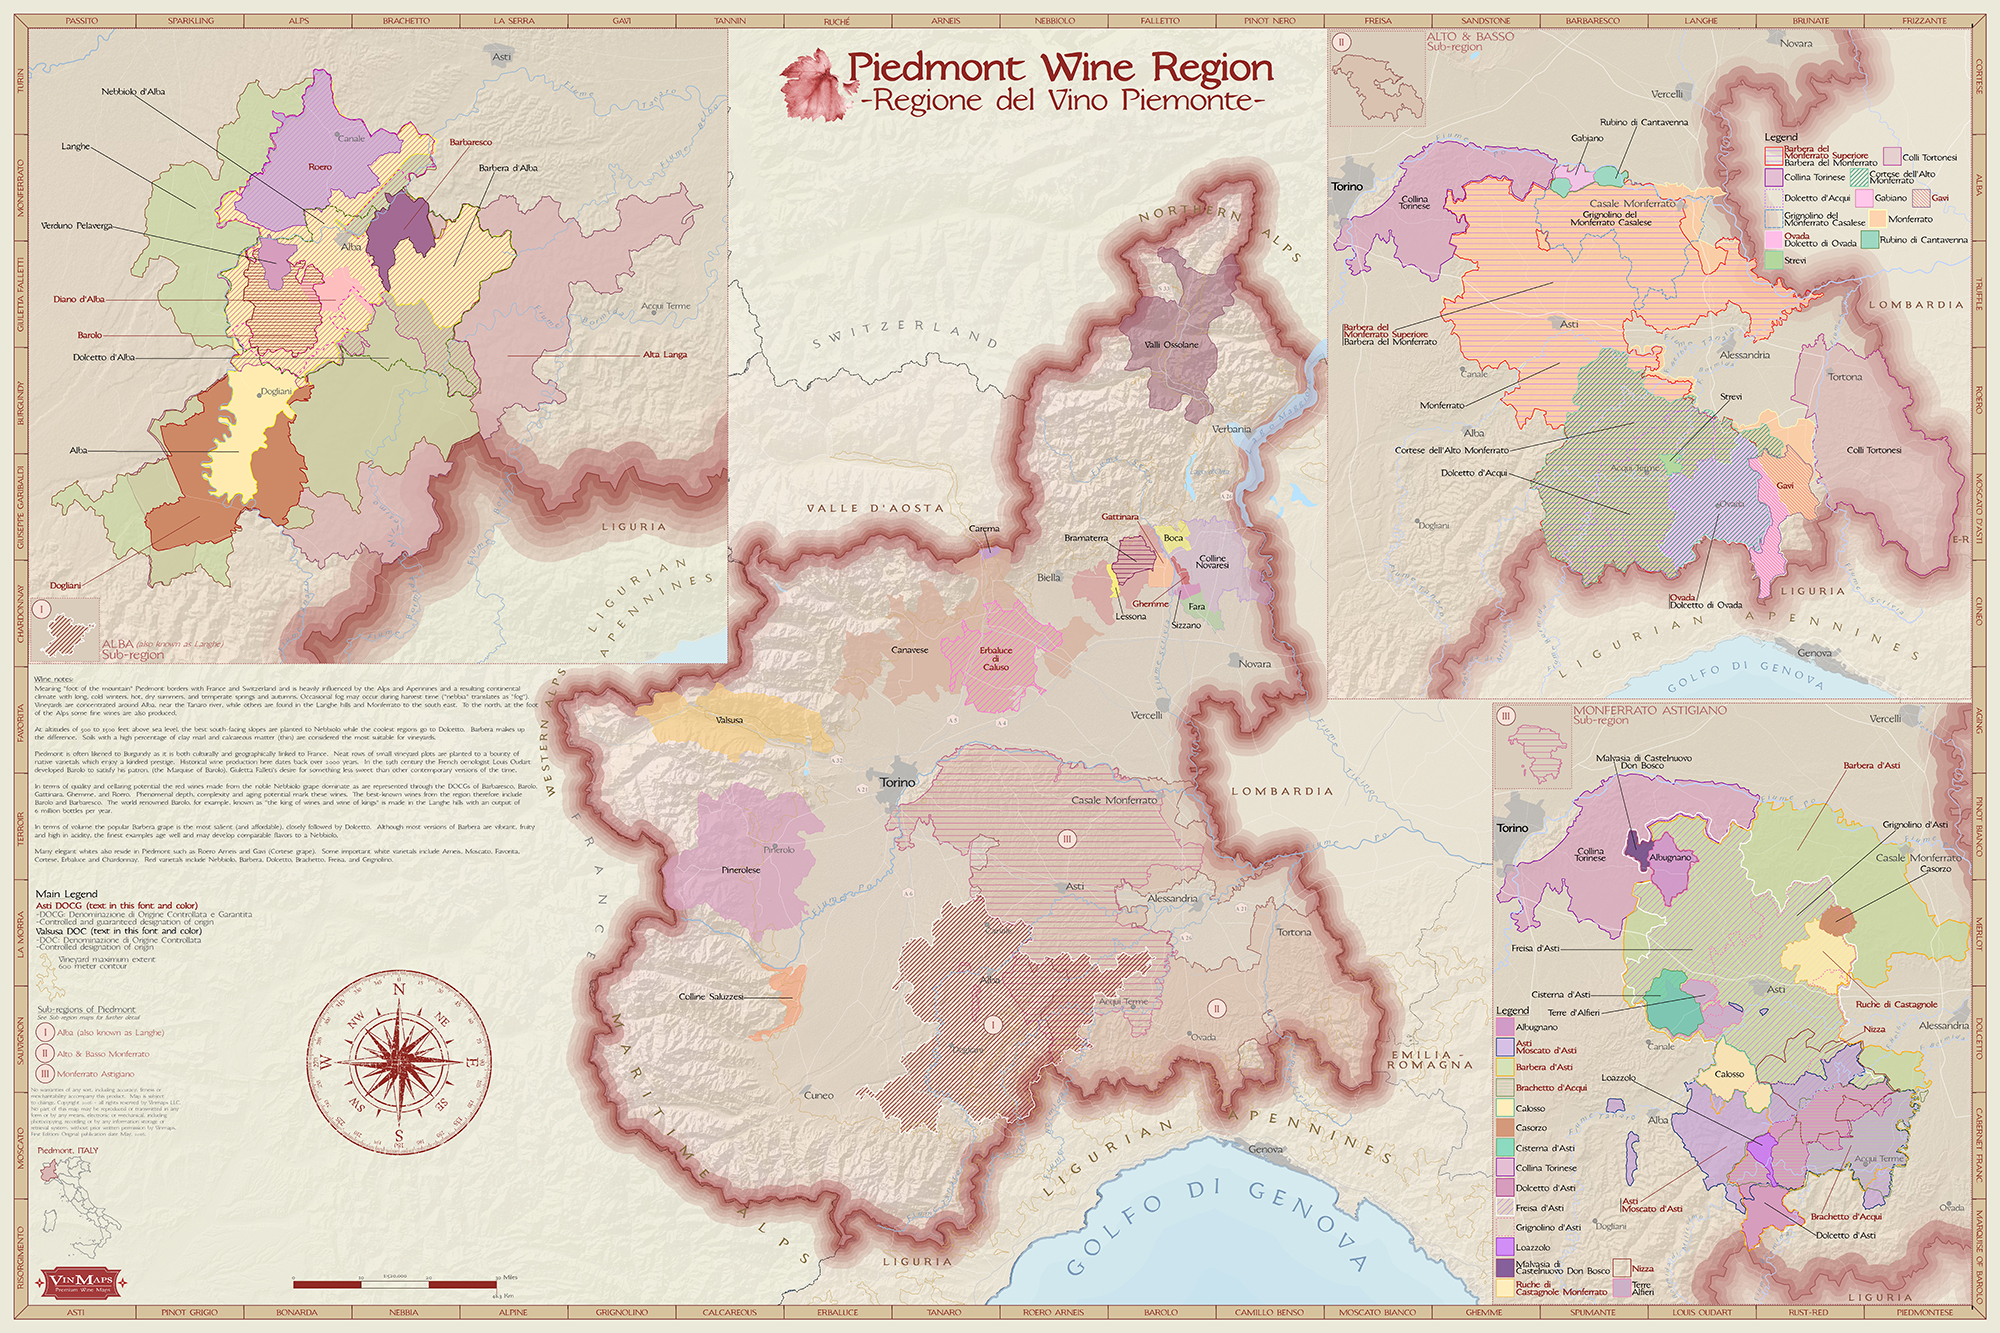 Wine Region Italy Map.Italy Piedmont Wine Region Map